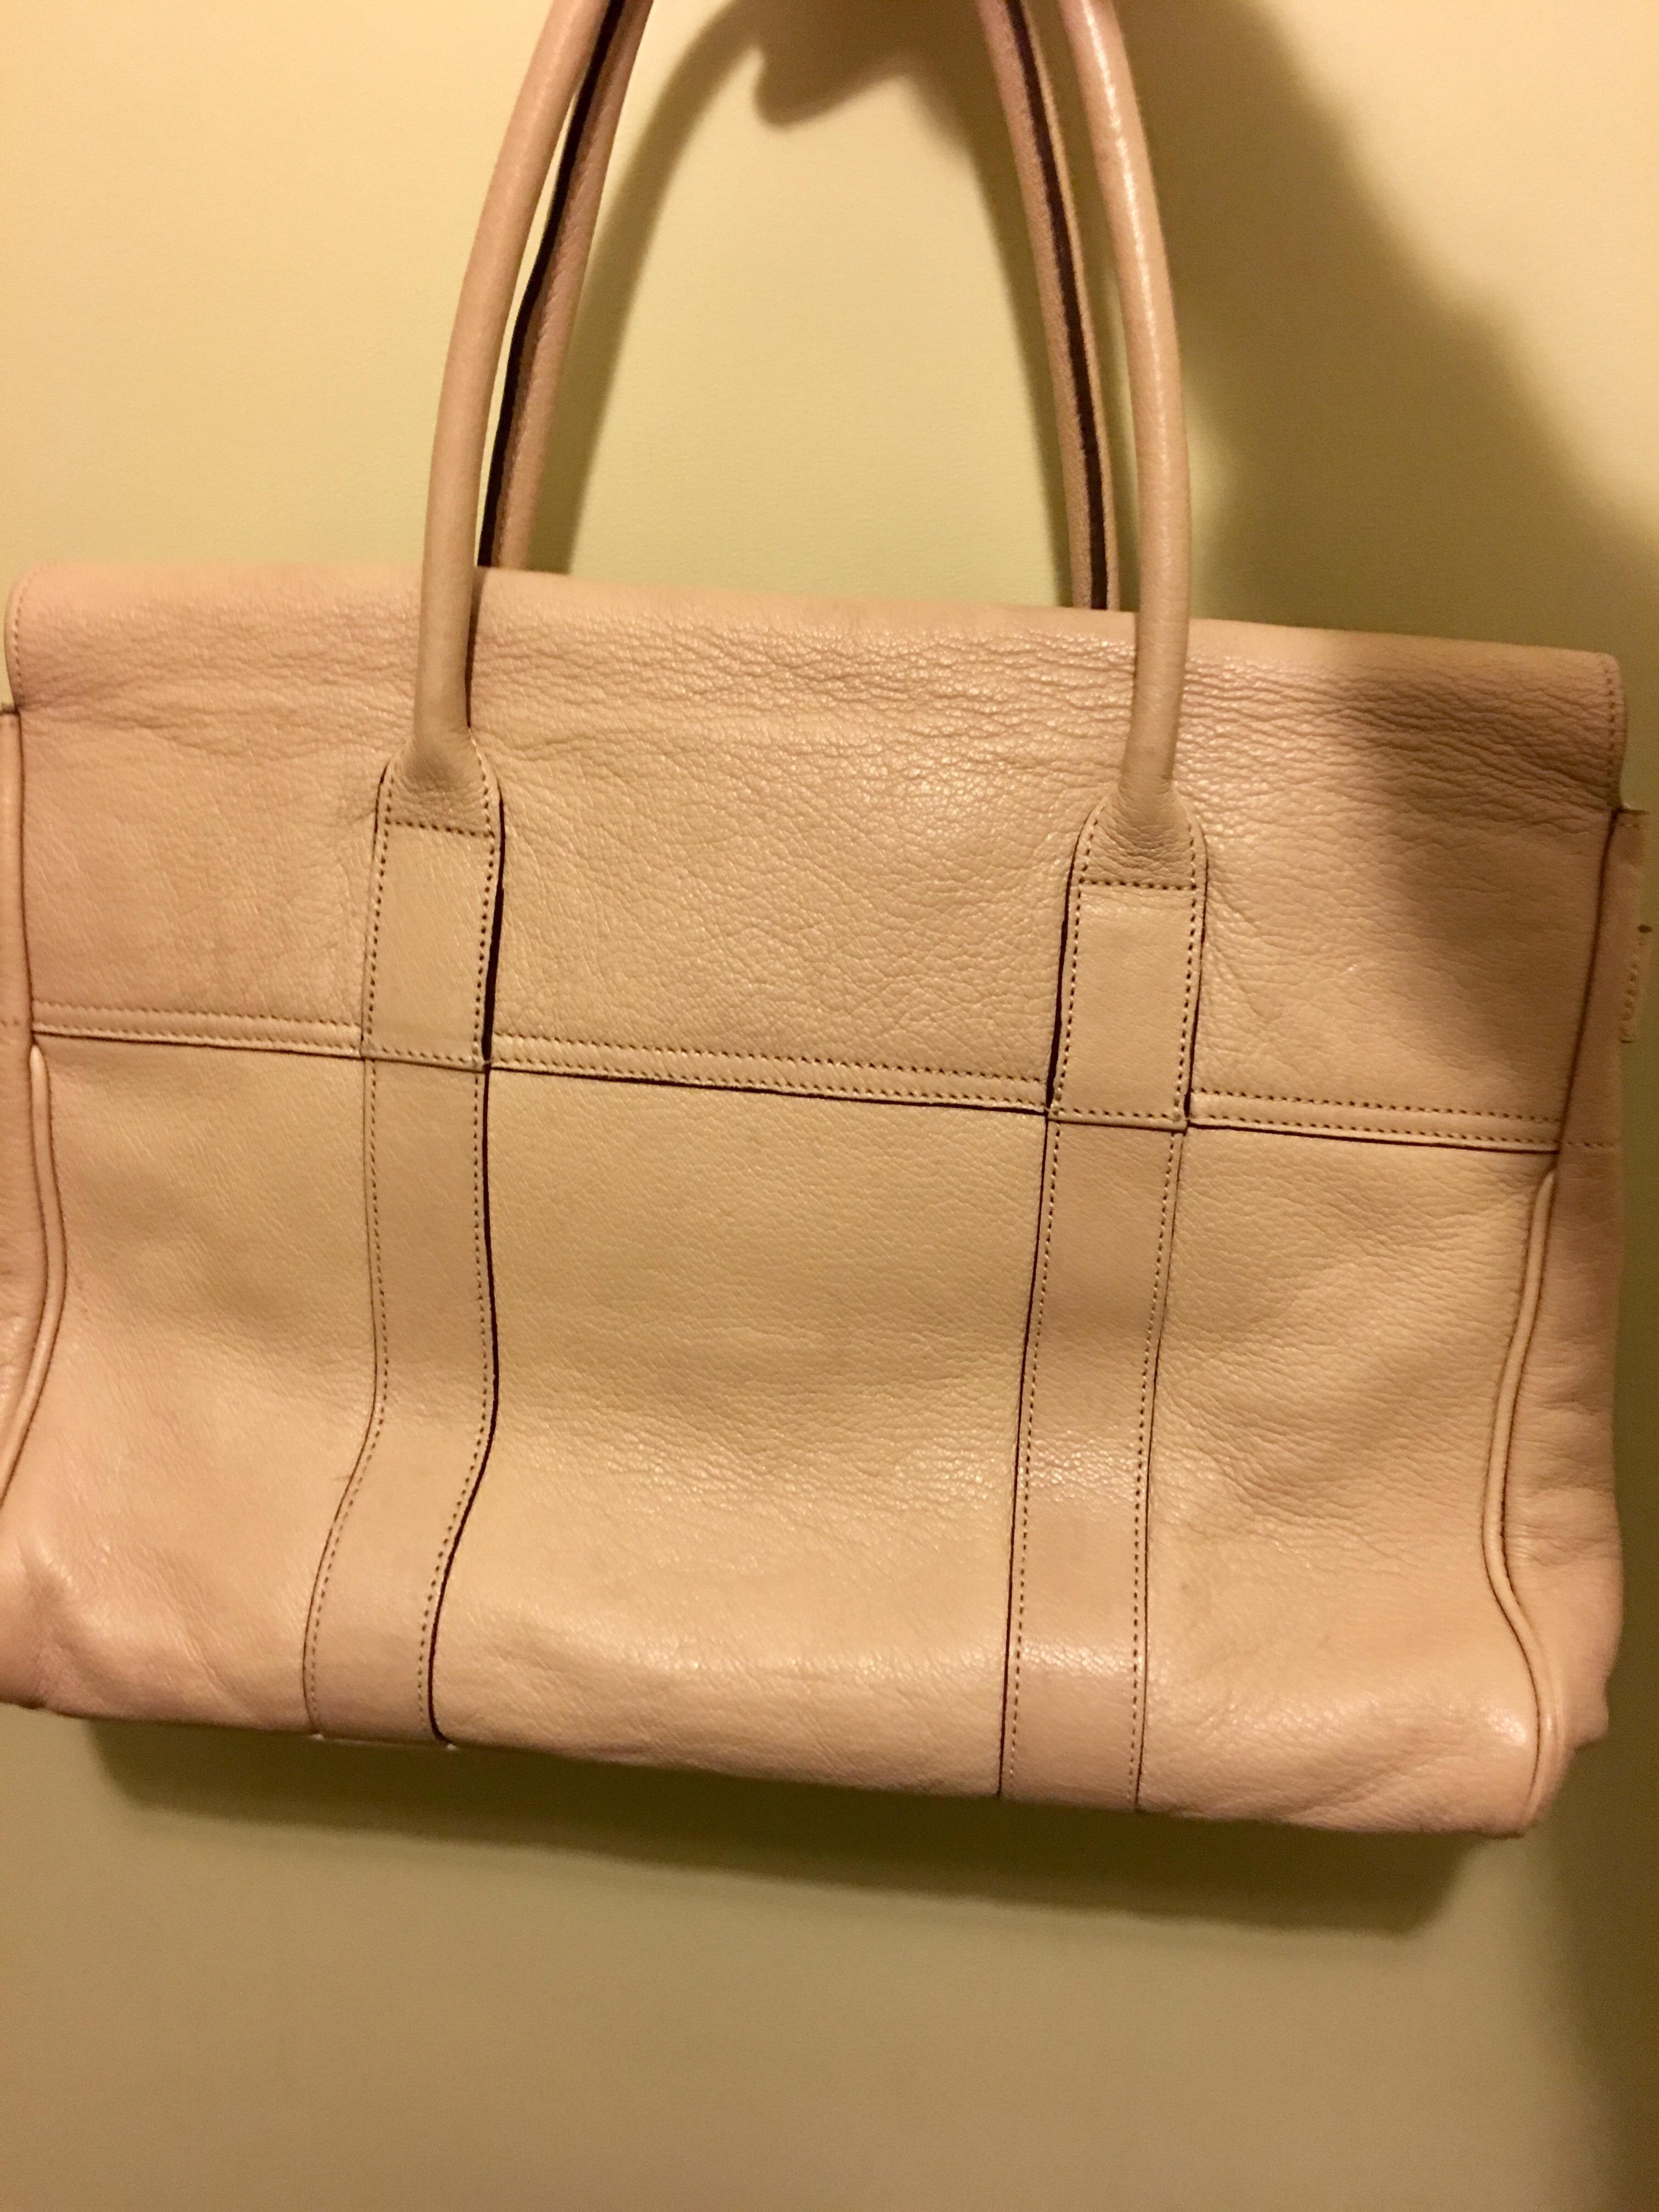 7eb4b2842c reduced mulberry bayswater grained leather tote e4377 07b81  discount code  for mulberry bayswater handbag tote in beige. 12345 f96f4 98b24